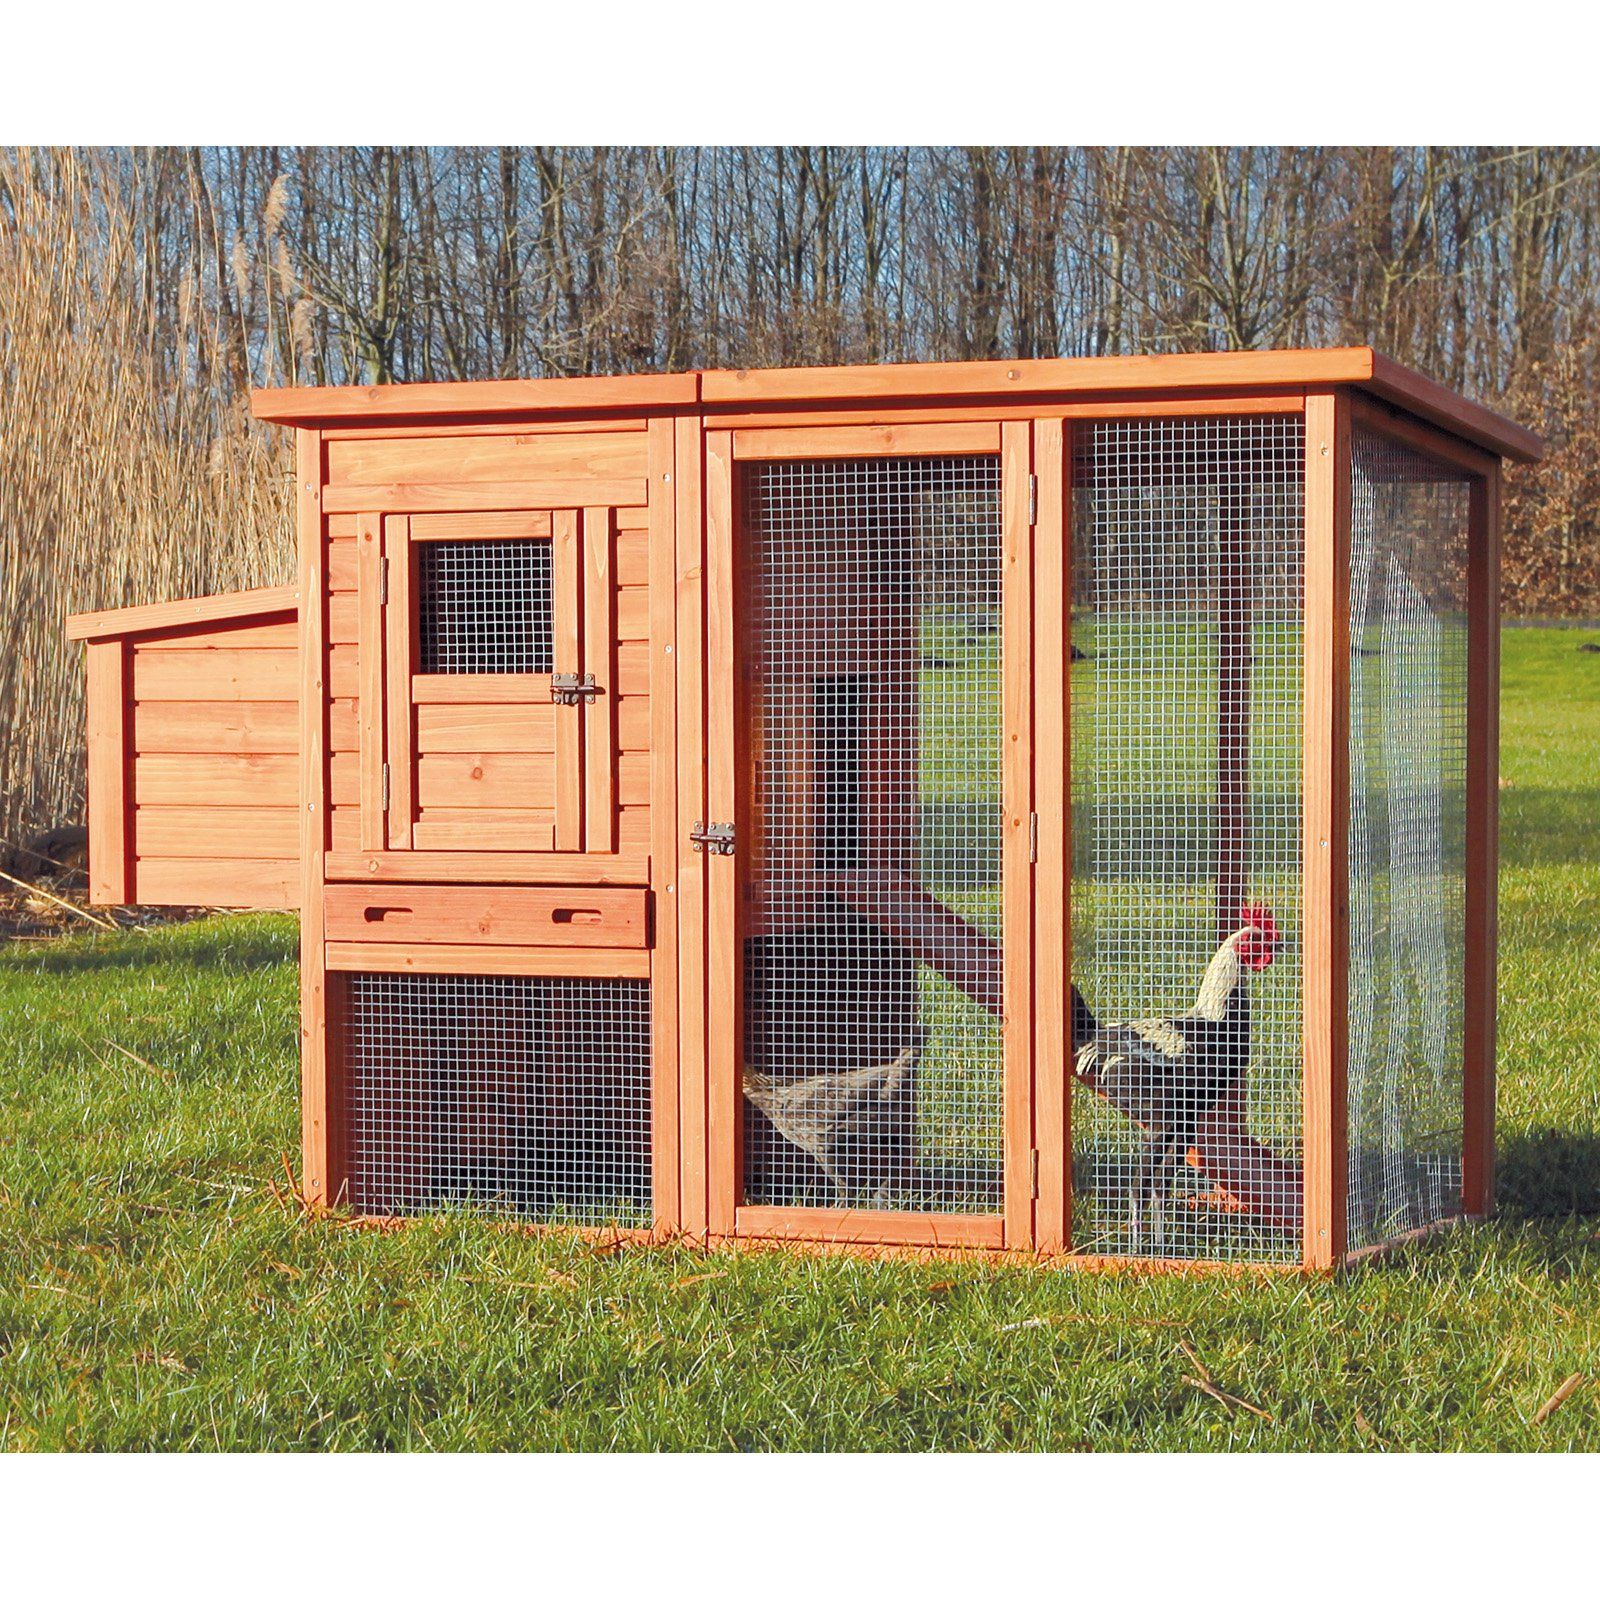 34 Free Chicken Coop Plans Ideas That You Can Build On: TRIXIE Chicken Coop With Outdoor Run - 55961